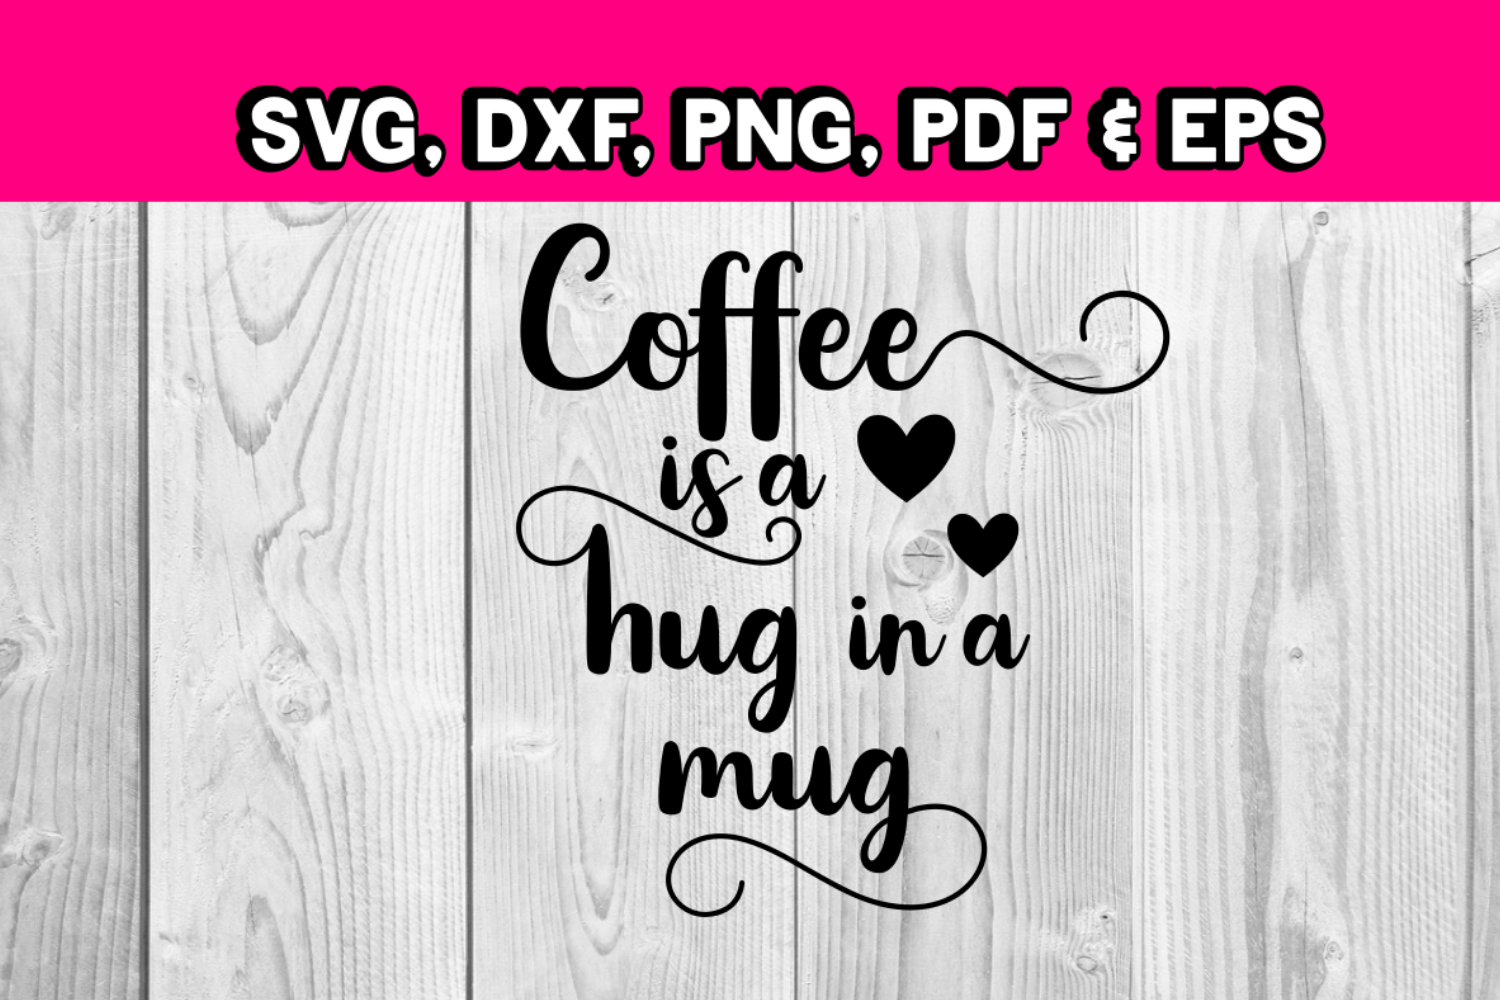 Coffee quotes - Coffee is a hug in a mug - svg coffee file example image 1